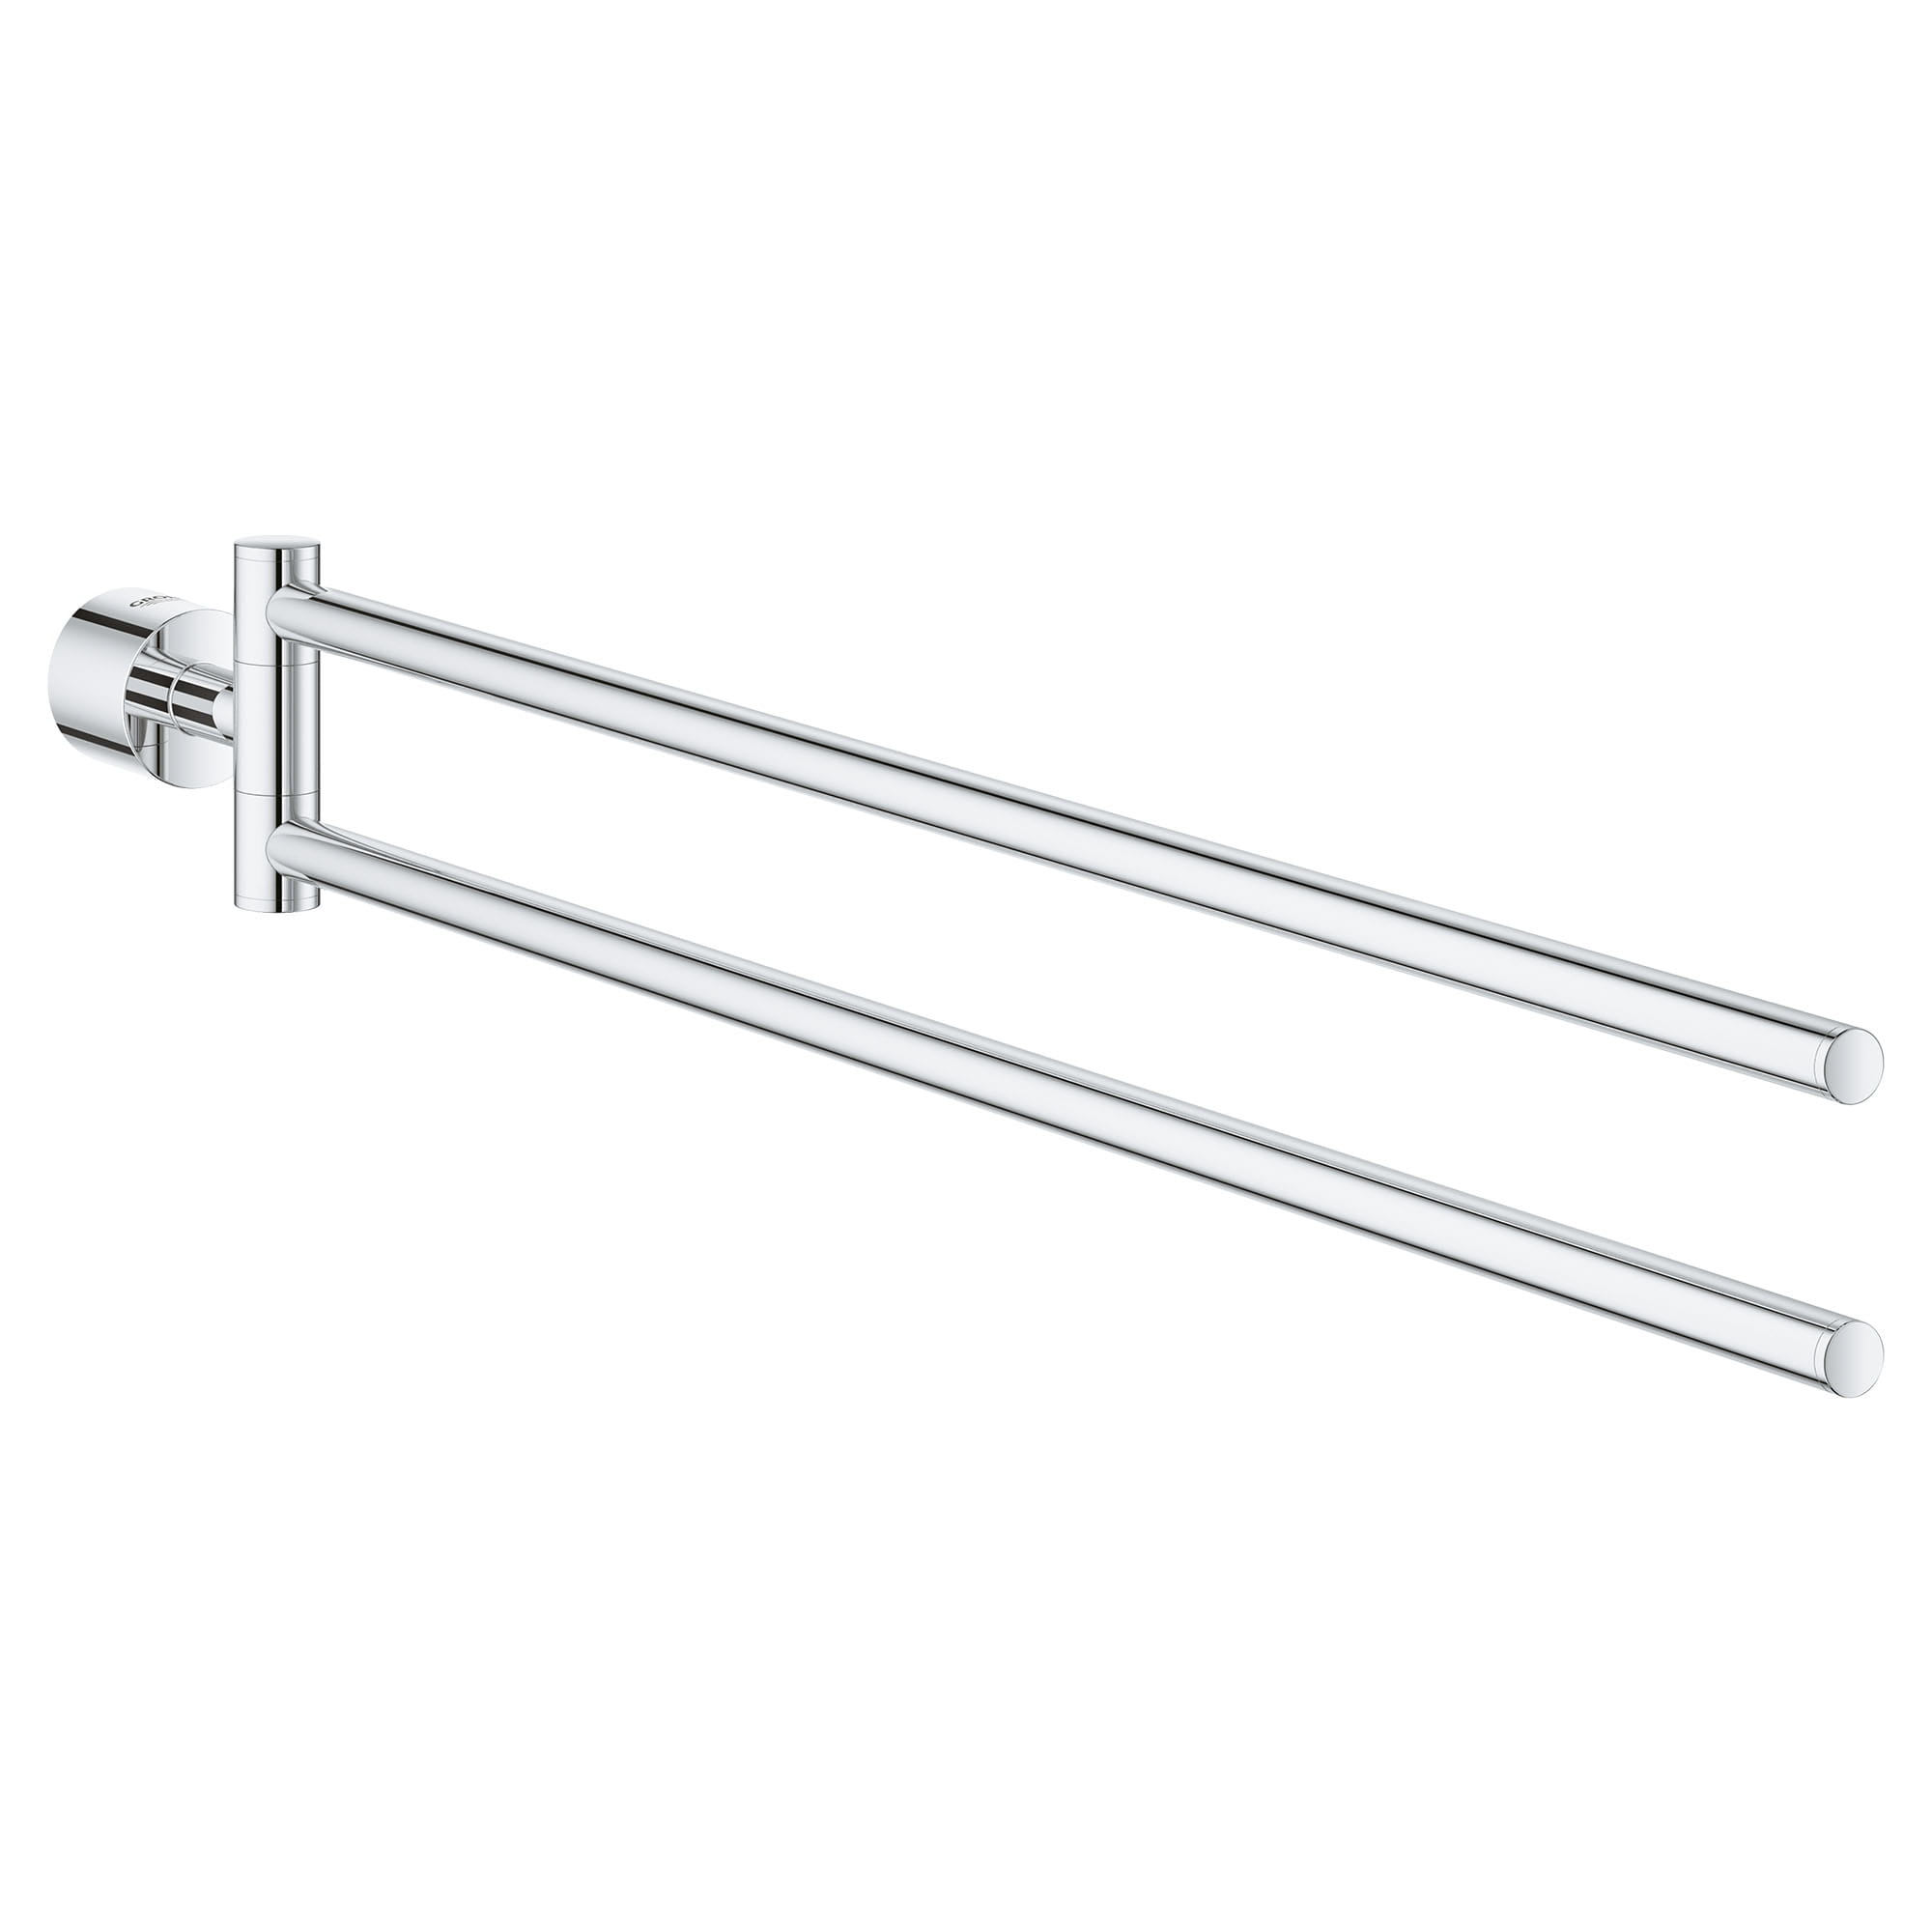 Porte serviettes à deux branches de 18 po GROHE BRUSHED NICKEL